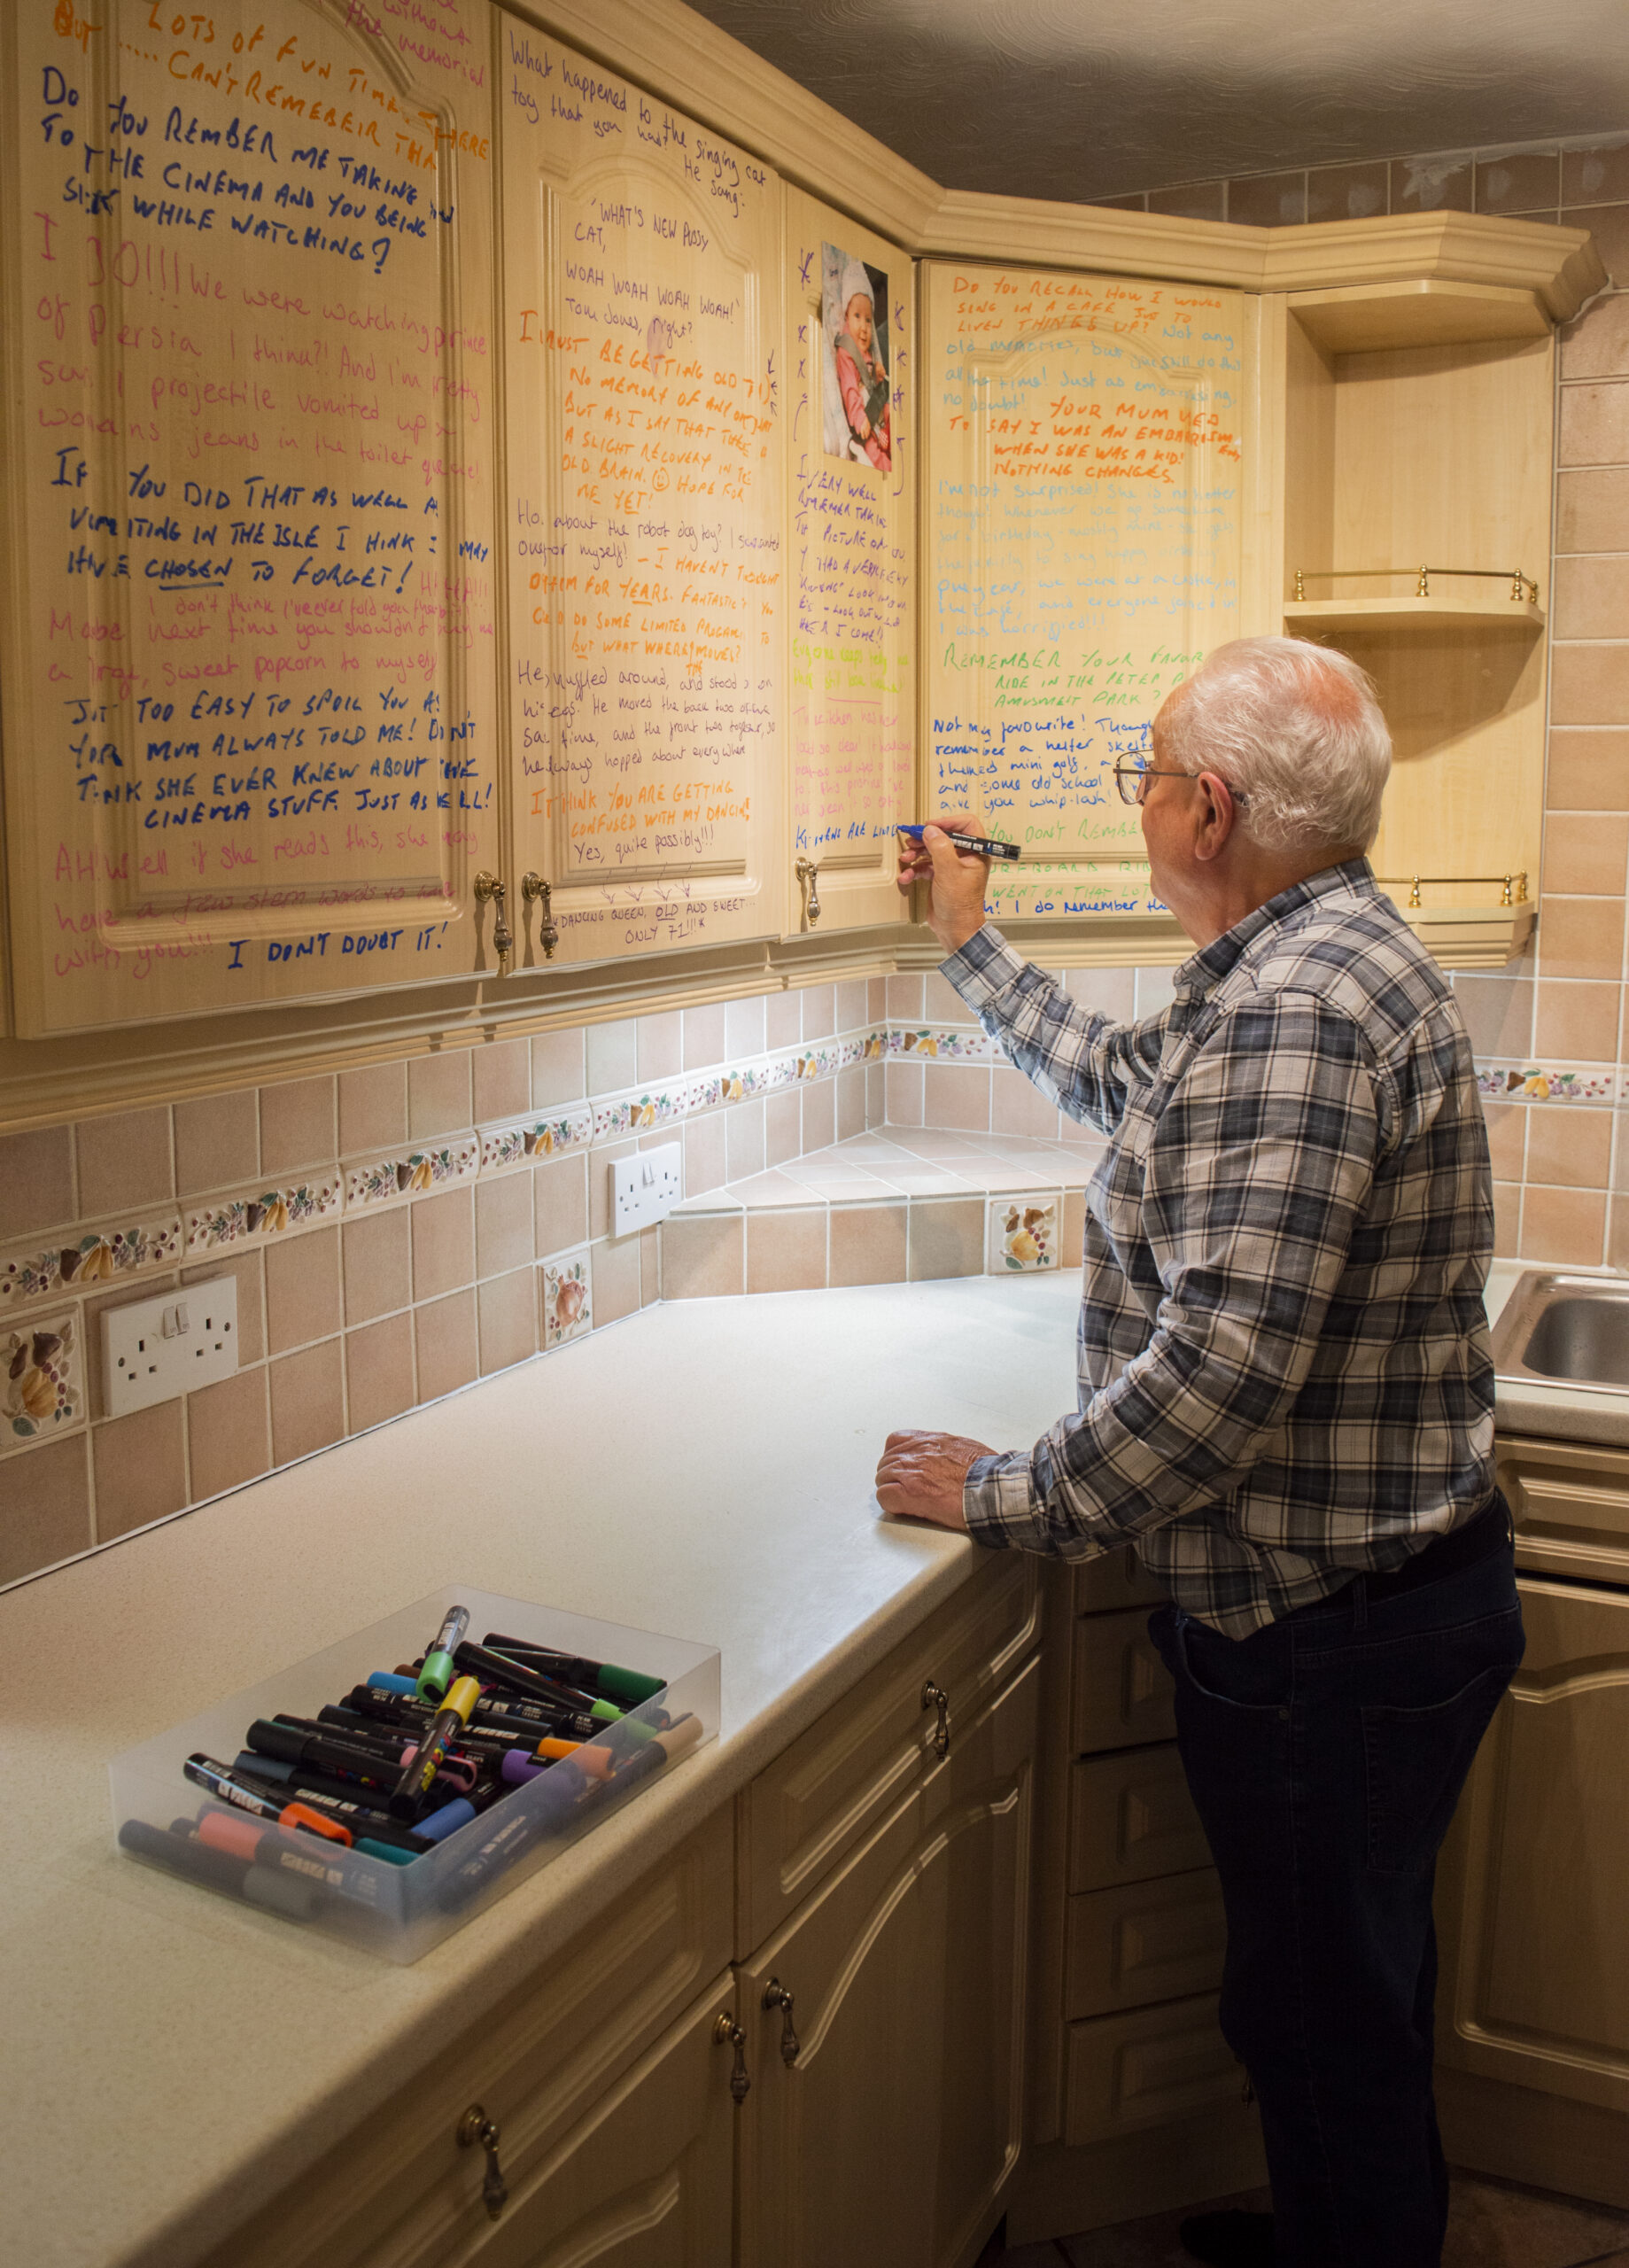 An older white man with white hair, glasses and wearing a checked shirt is facing away from the camera and writing on kitchen cabinet doors using paint markers. There is multi coloured writing all over the cabinets and a box of markers in the foreground.